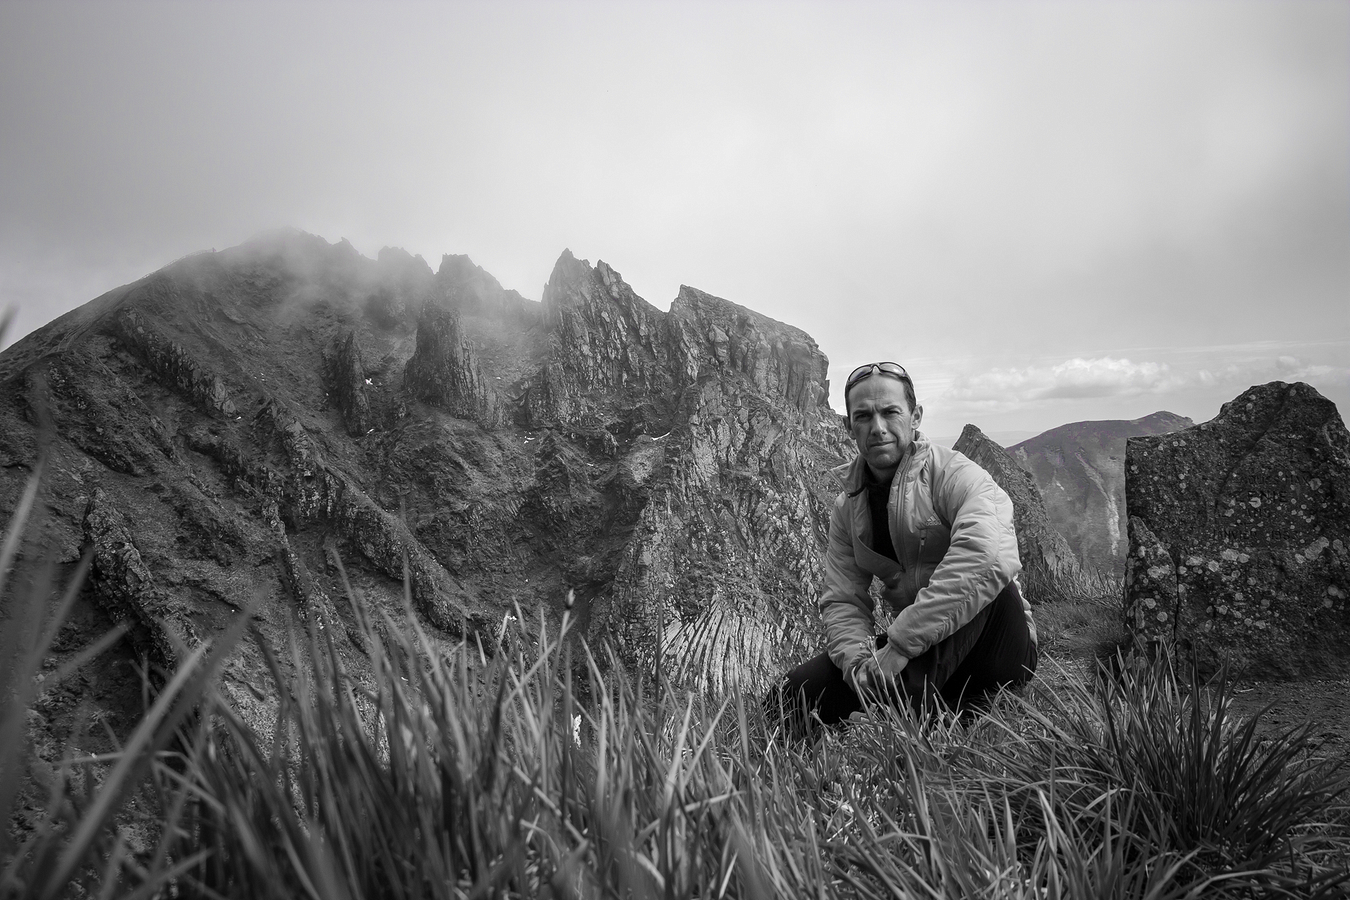 Photographe Outdoor Annecy Alpes – French Outdoor Photographer - Sébastien TORCHIO, Annecy Photo